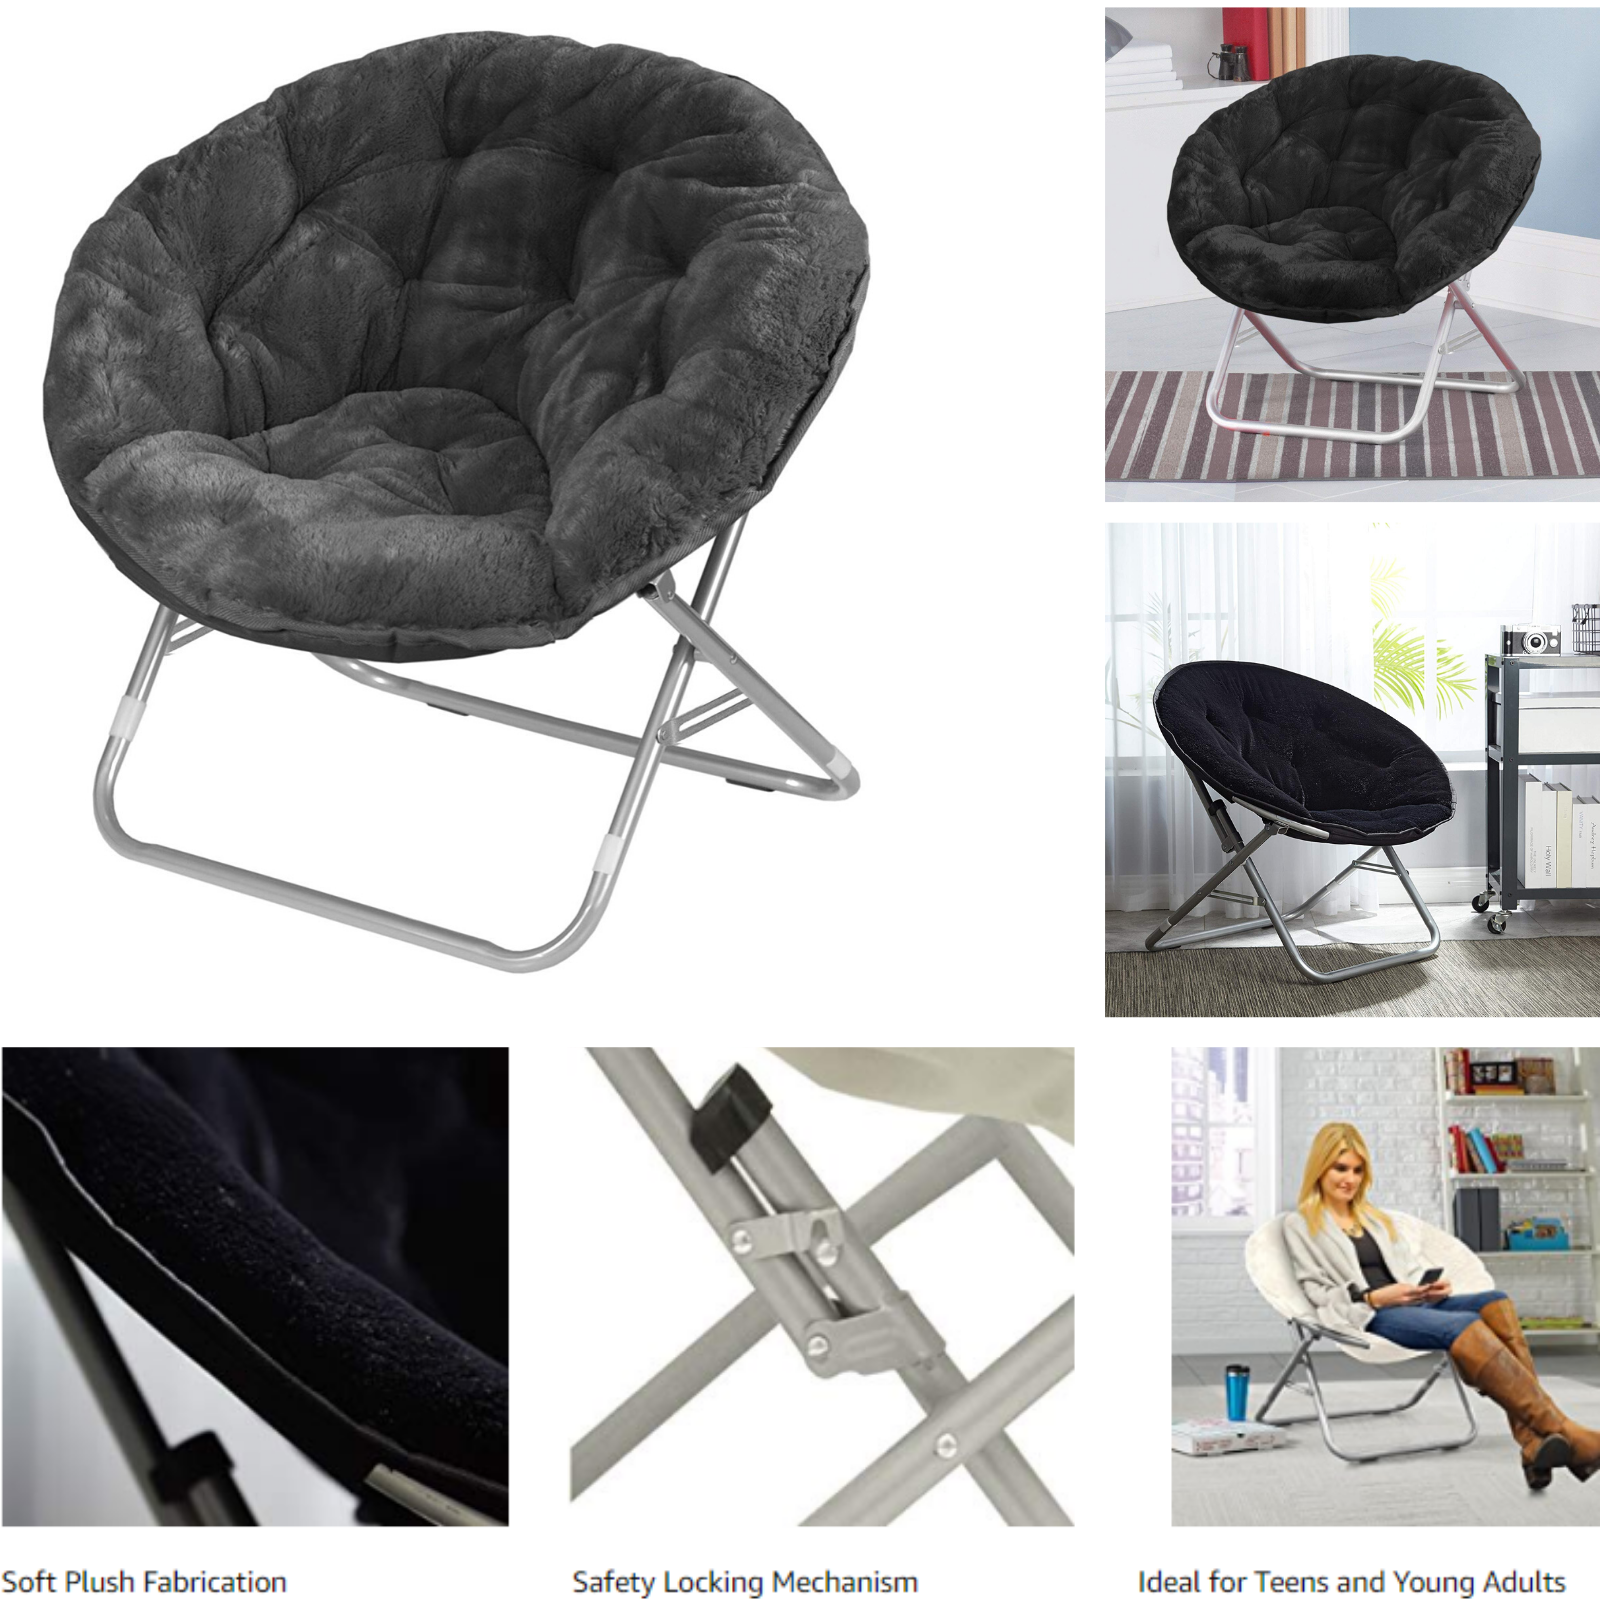 Urban Shop Wk659840 One Size Saucer Chair Black For Sale Online Ebay